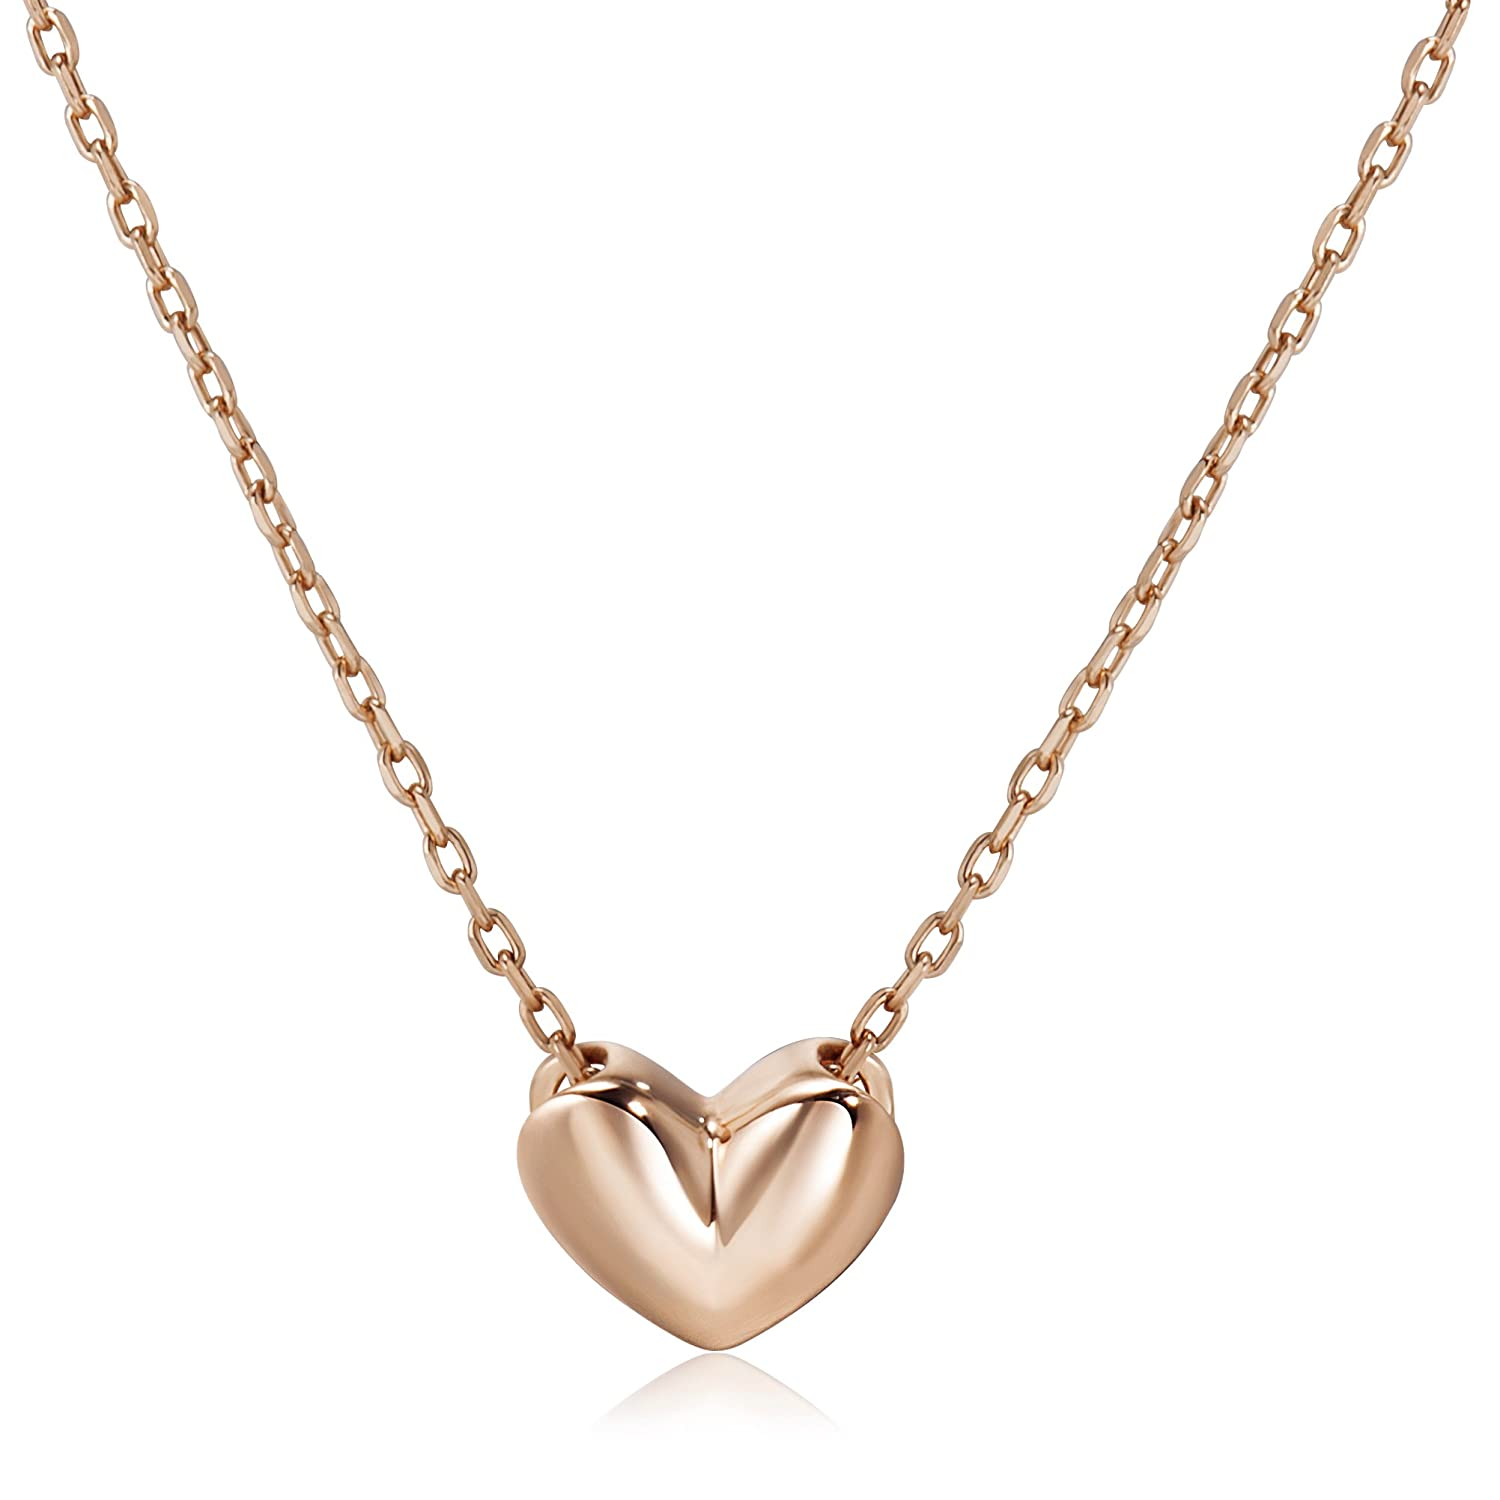 collar necklace o zoom listing mini bdsm day ring heart fullxfull lockable il chain stainless